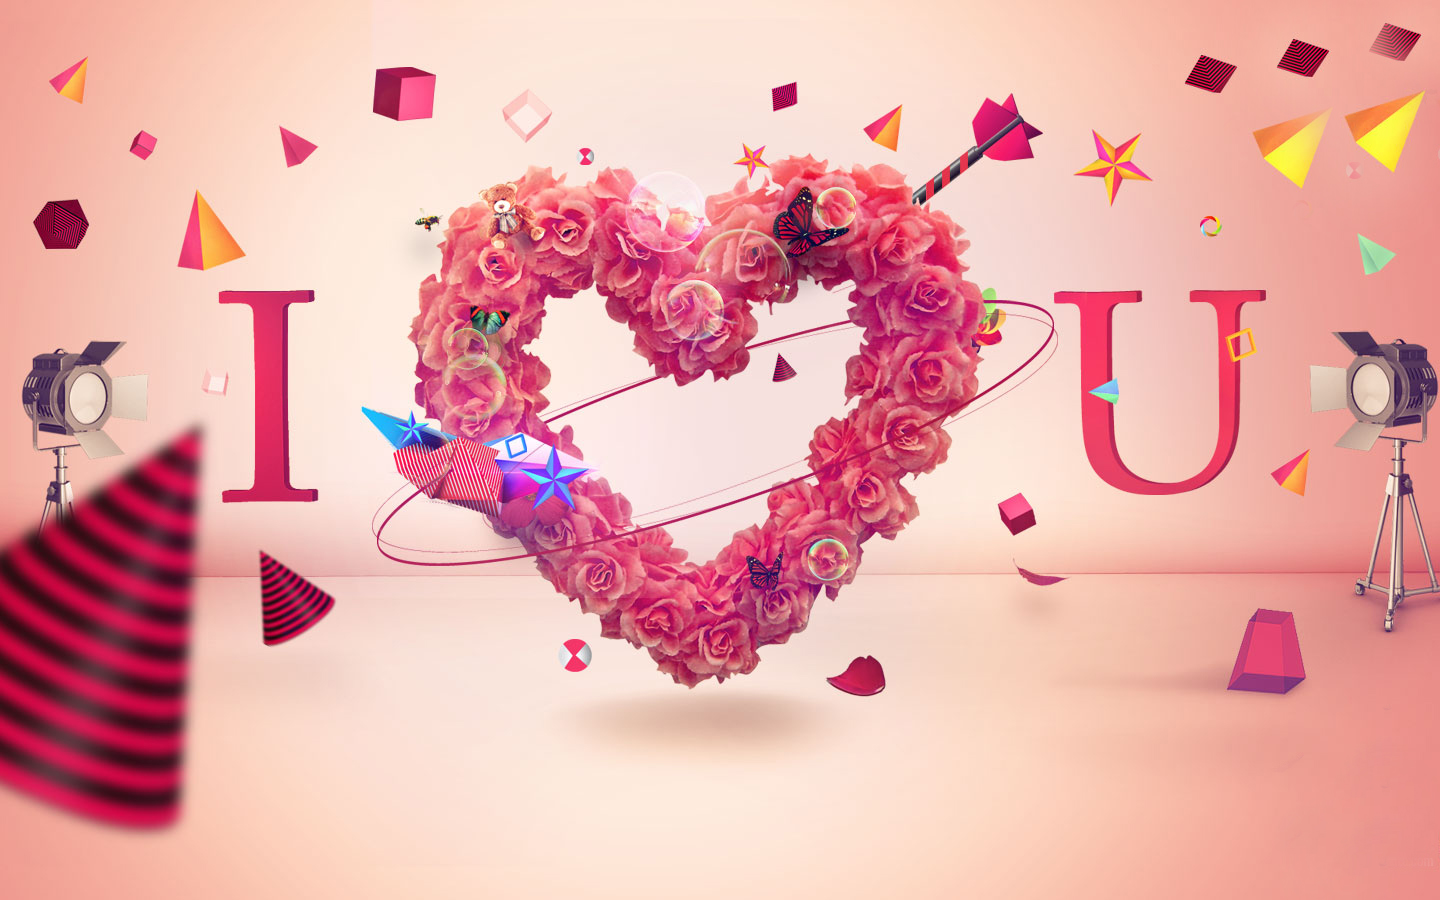 Wallpaper download in love - Love You Wallpapers Love 3d Wallpapers Love 3d Vector Images Love